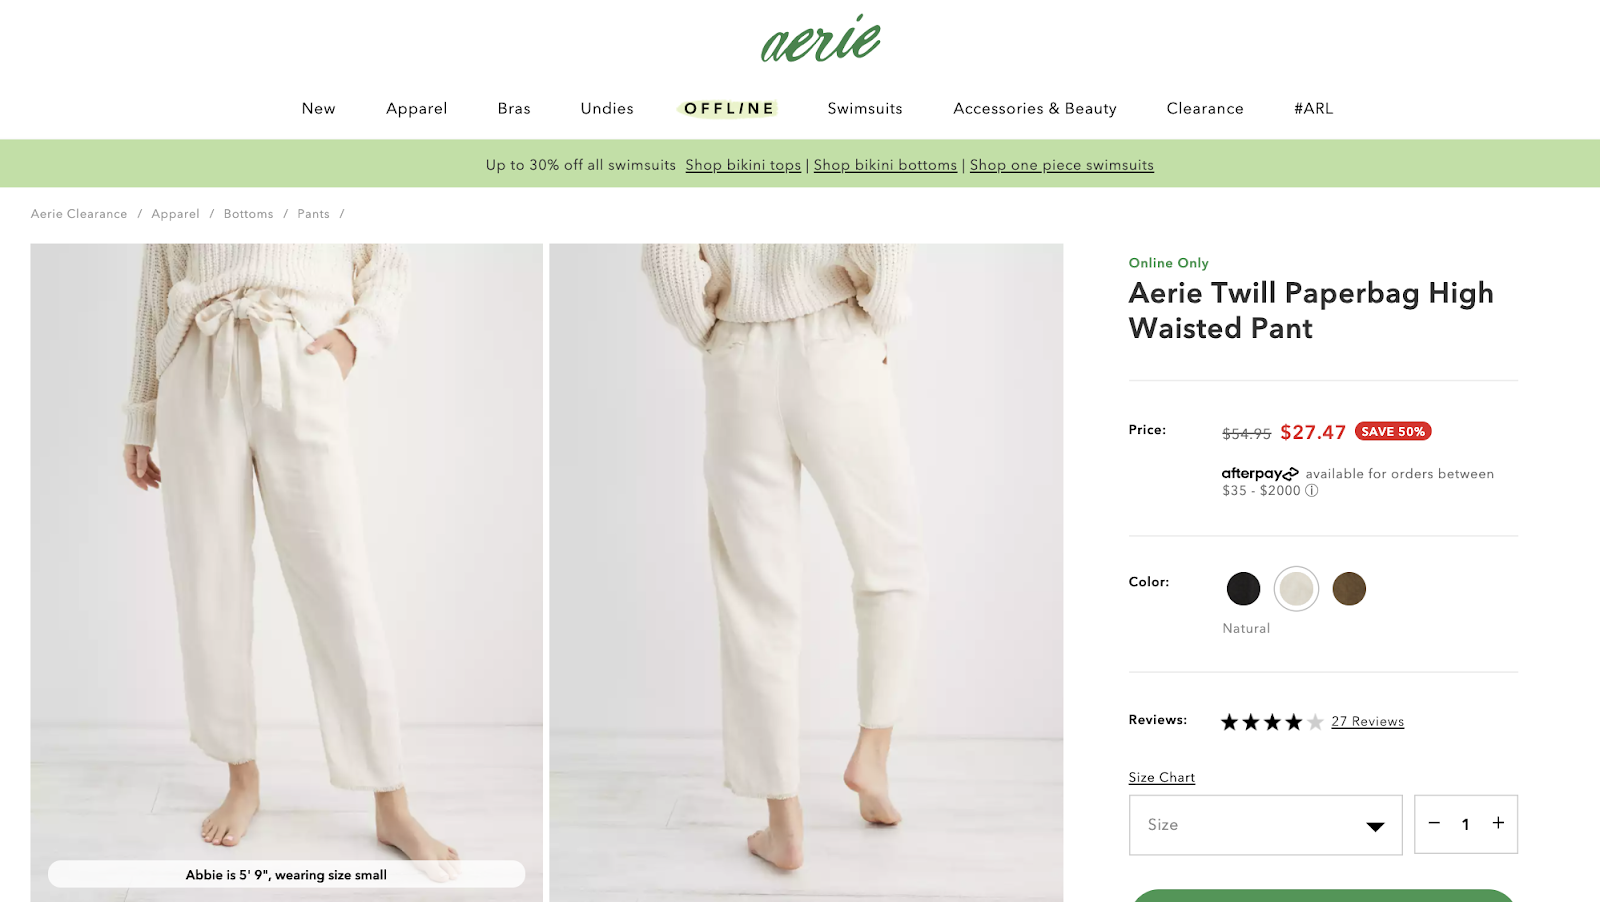 product listing for Aerie Twill pants on sale for $27.47